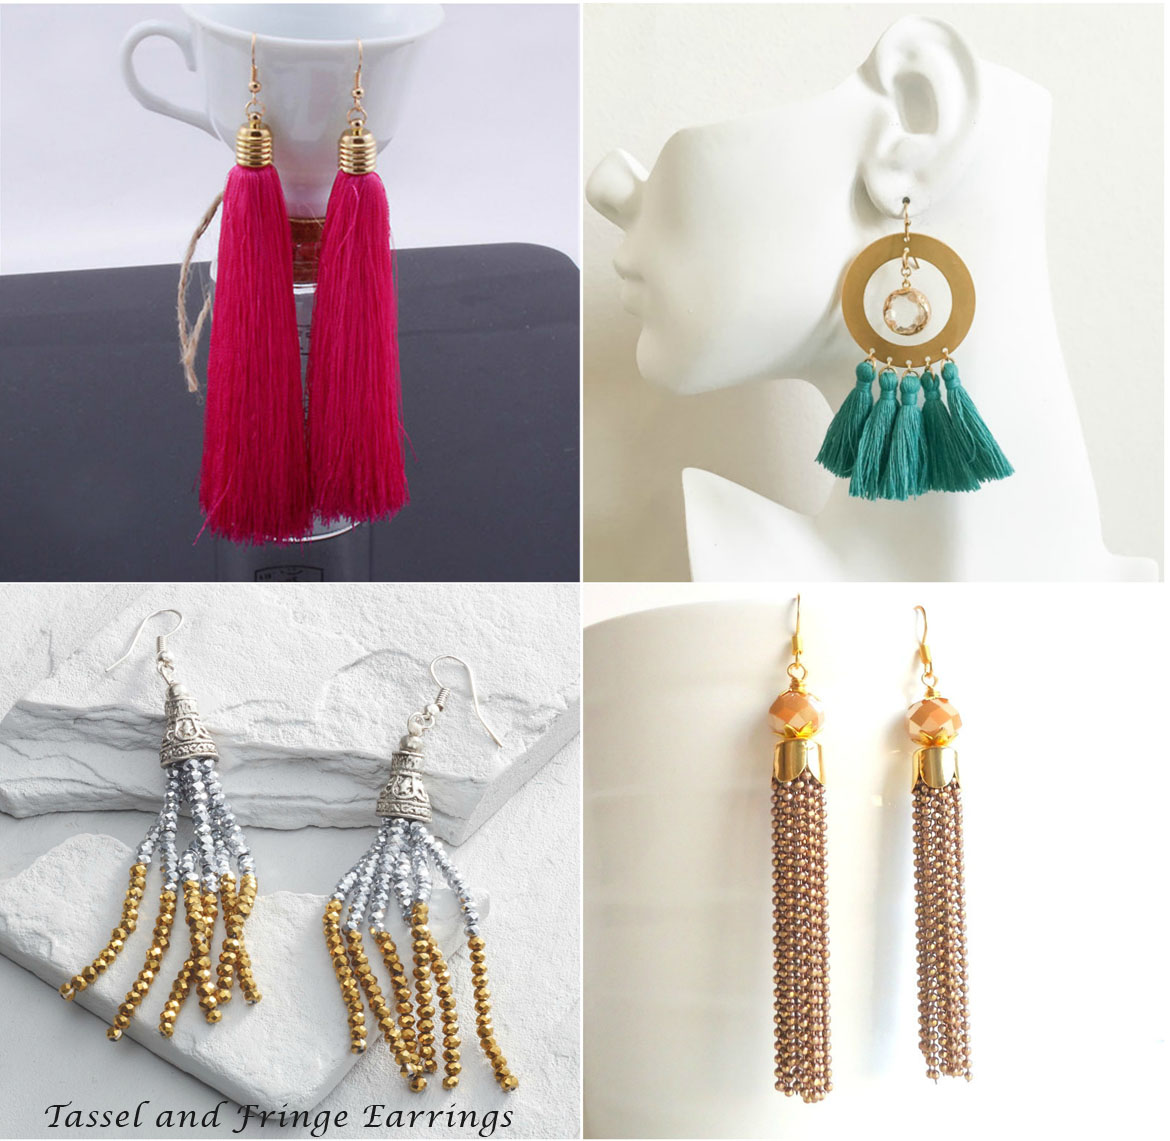 Tassel and Fringe Earrings